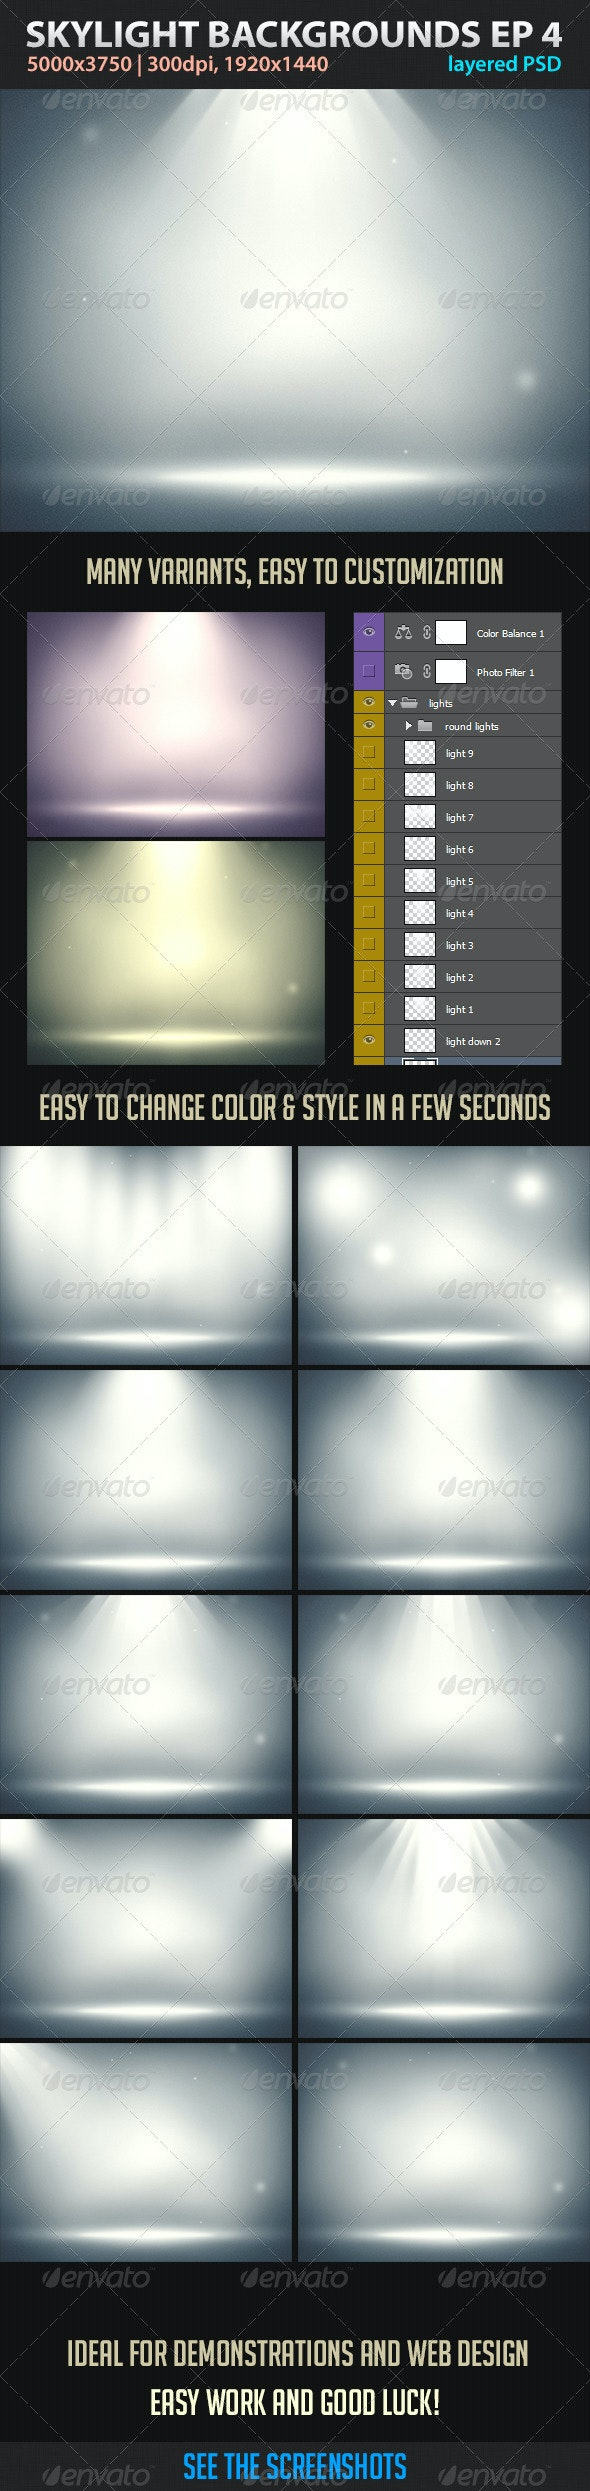 Skylight Backgrounds EP 4 - Abstract Backgrounds